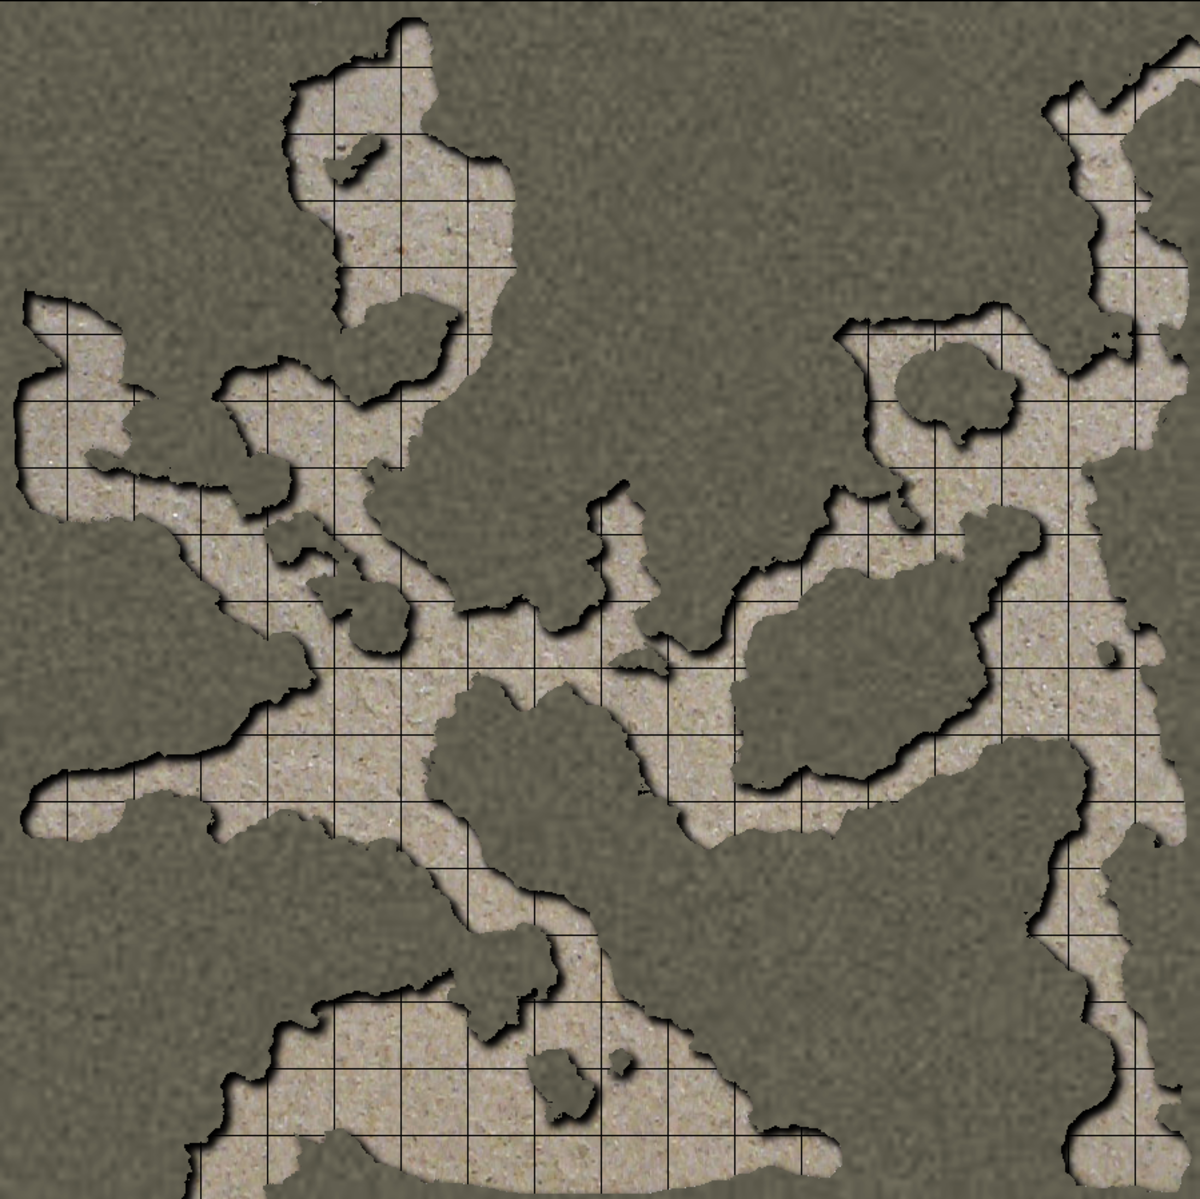 Unpopulated caverns